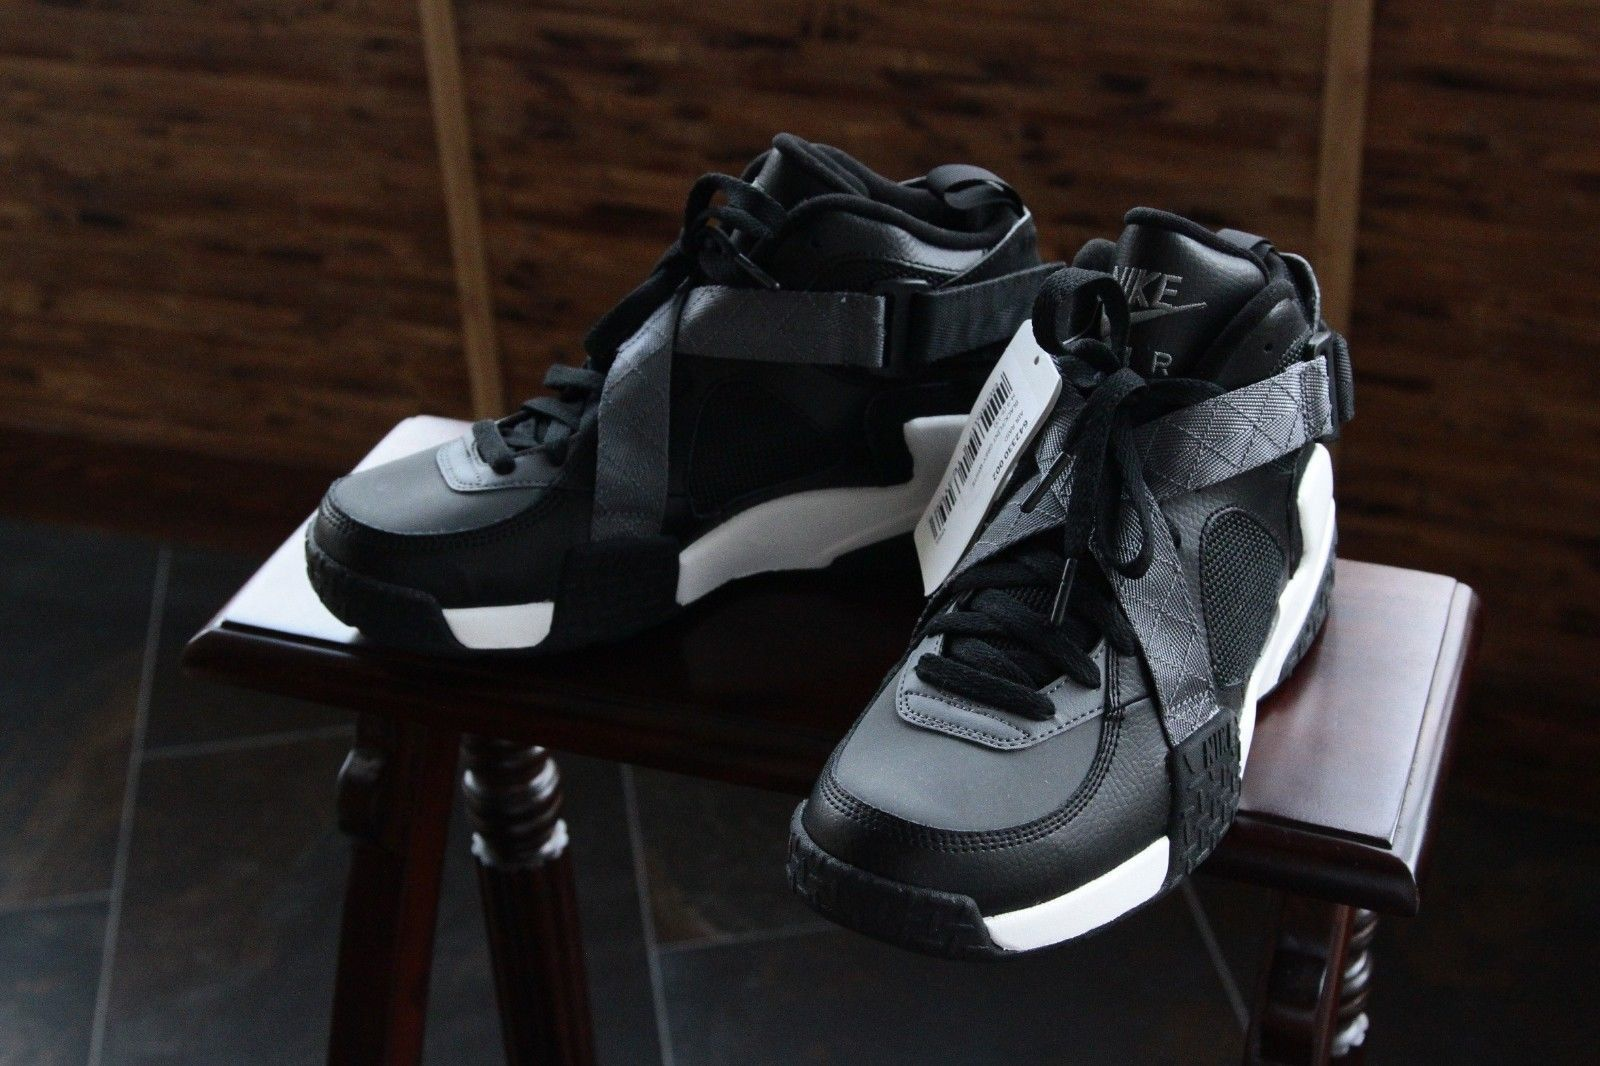 nike-air-raid-black-flint-grey-white-2014-sample-2